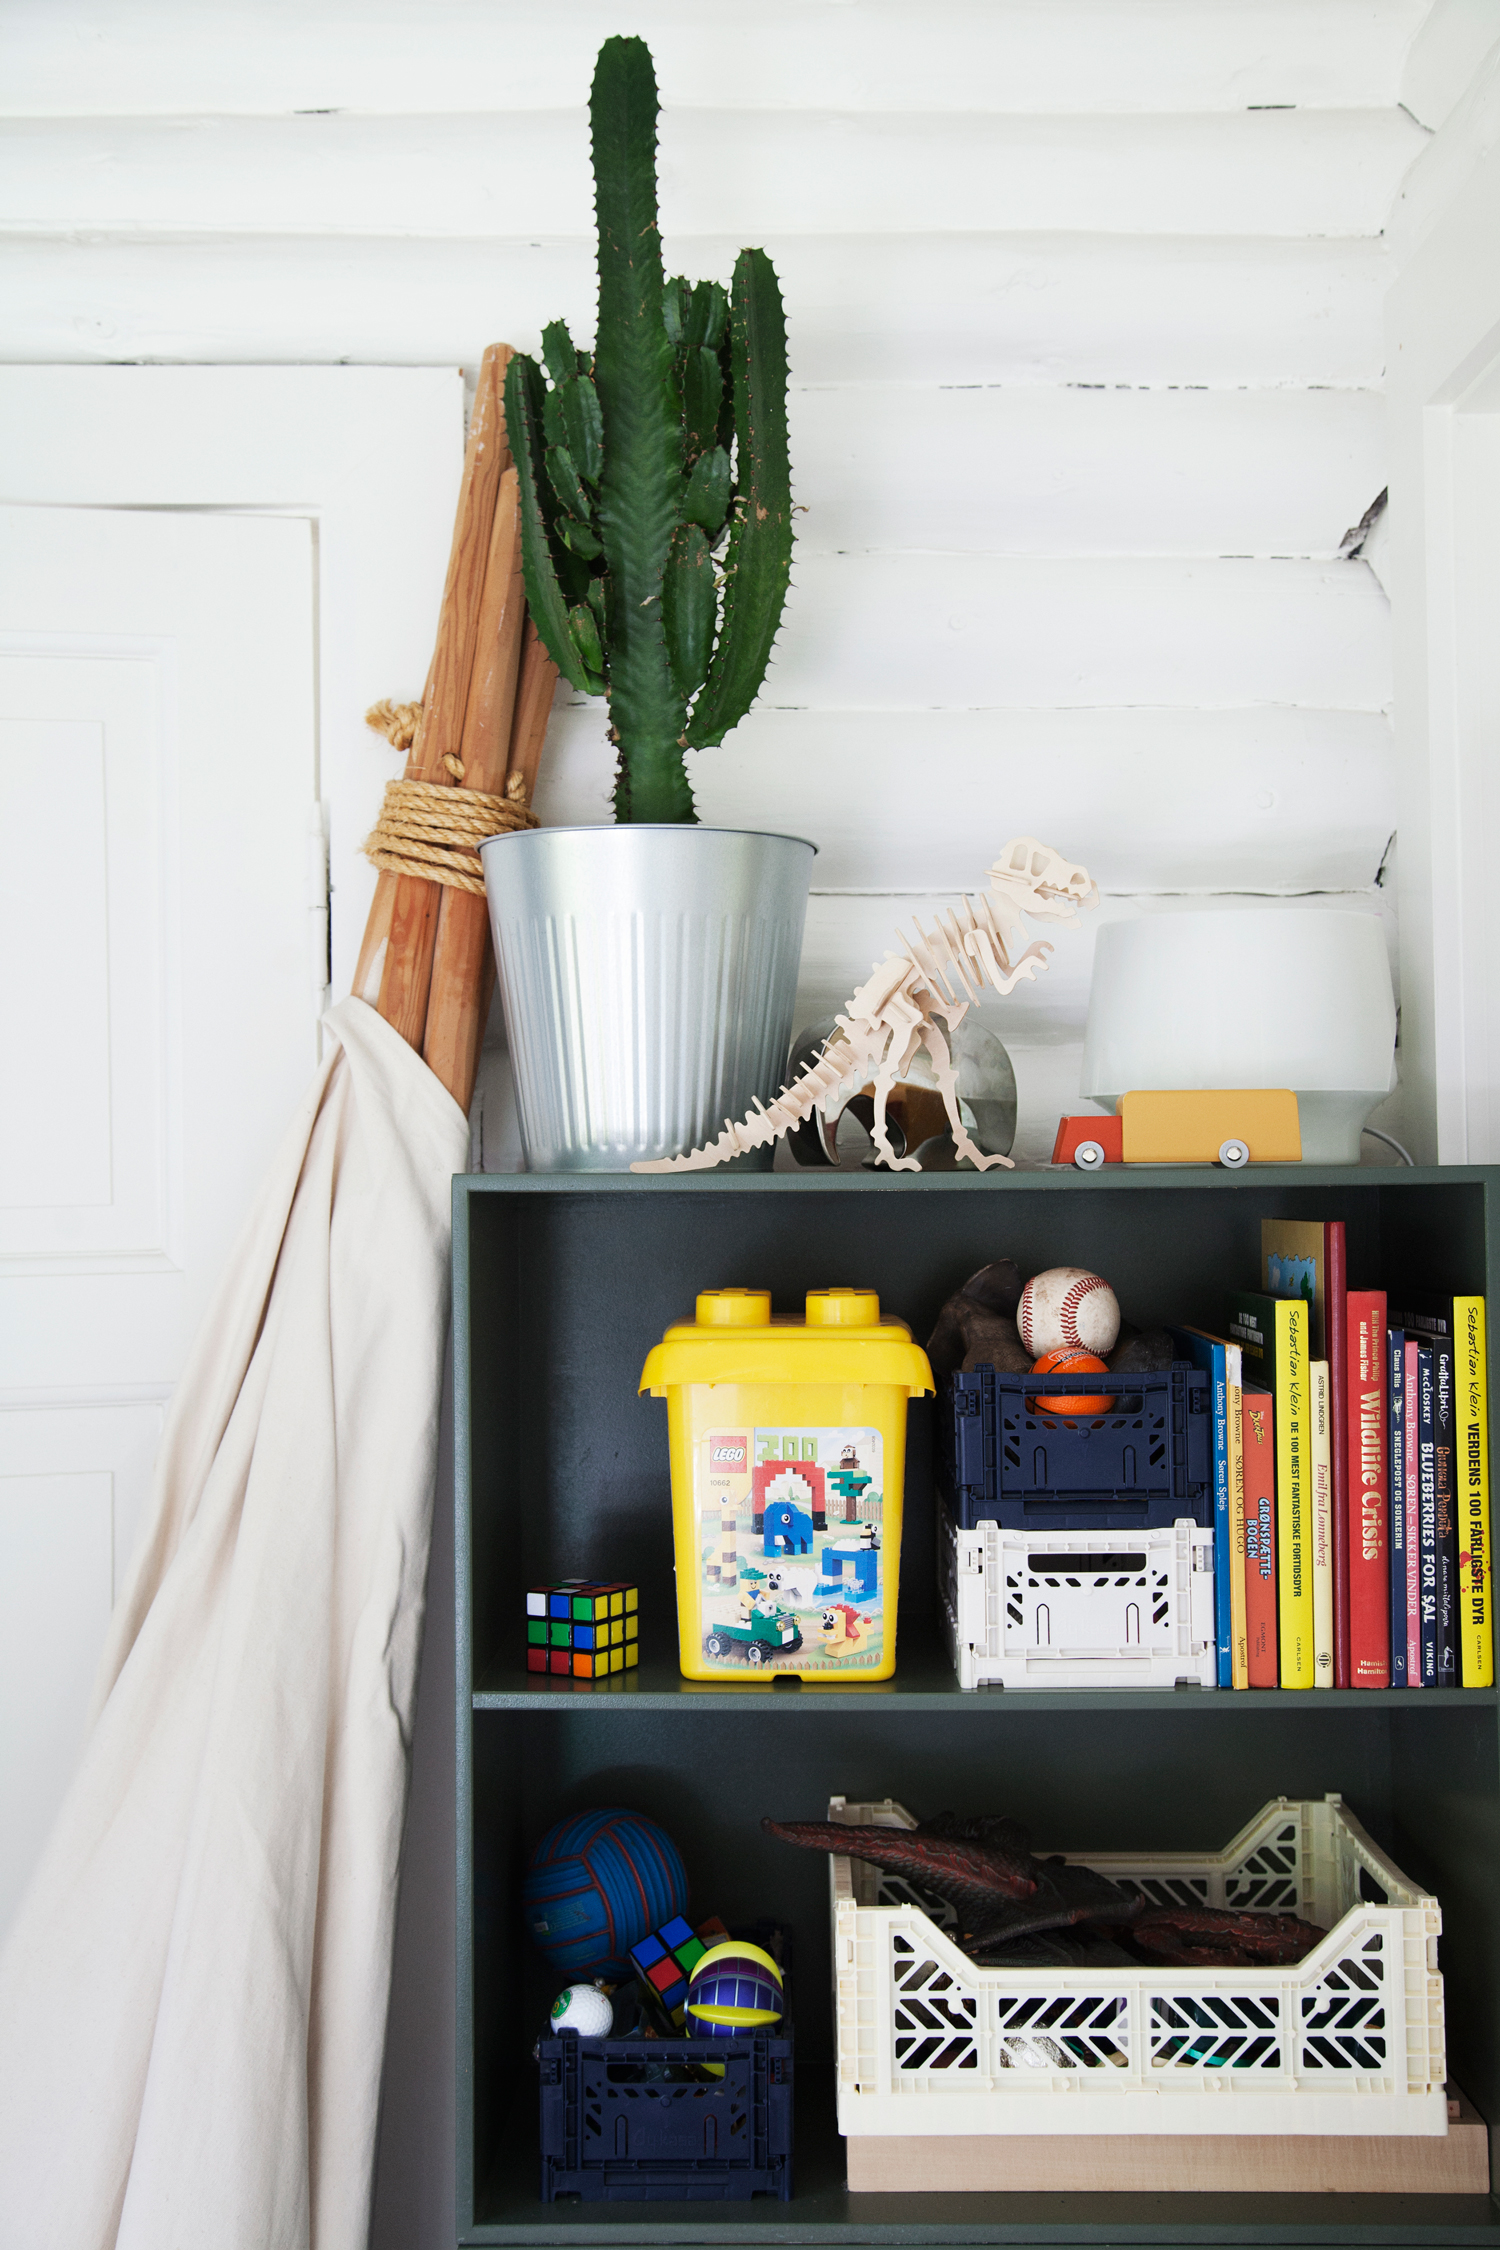 Next to a handmade tipi stands a  Dinosaur Wooden Puzzle  and a  Duotone Car .  Mini and midi storage boxes  are used to store toys throughout both children's rooms.